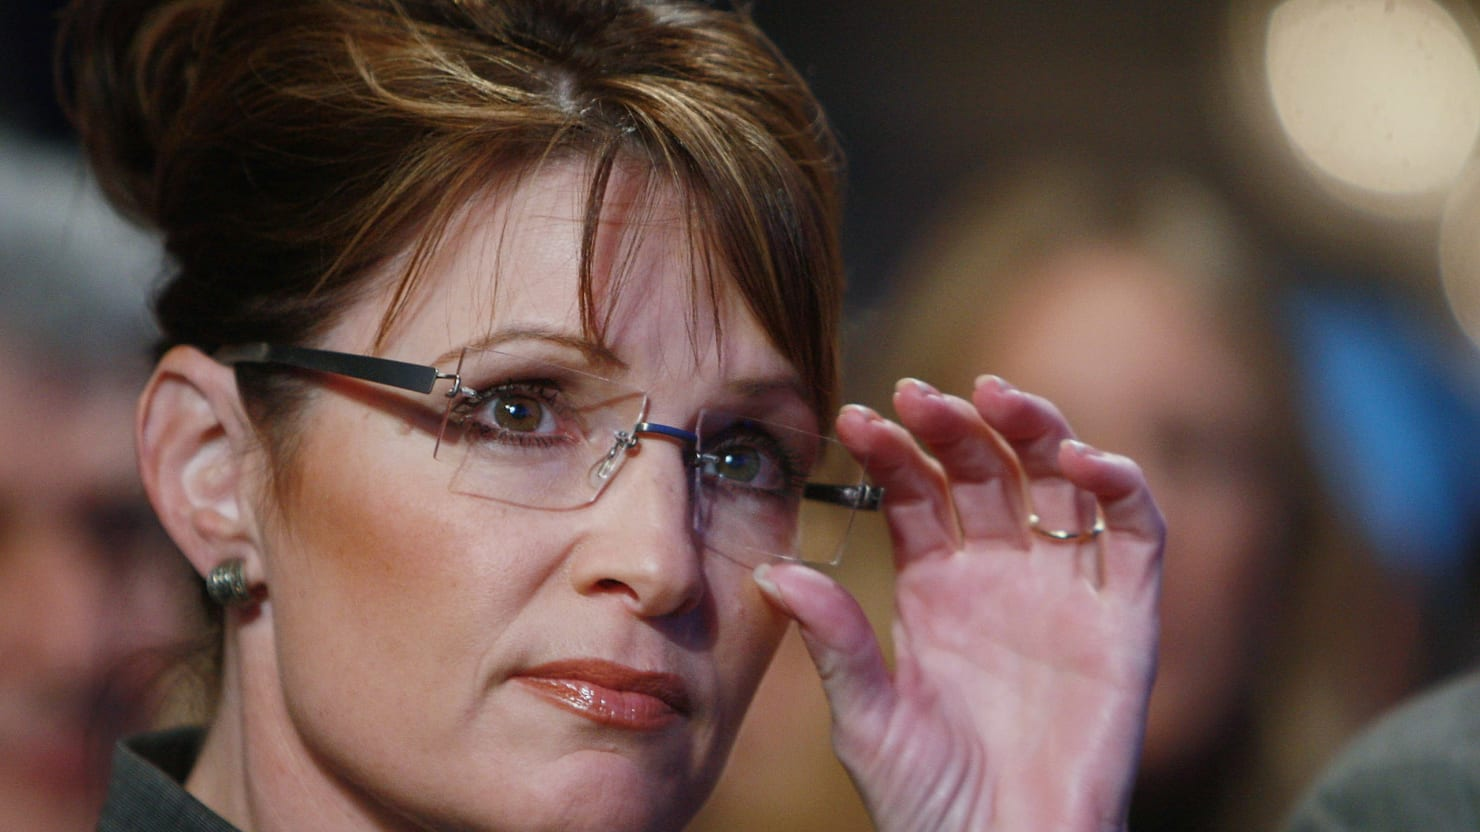 essay sarah palin By telling barbara walters that she thinks she can defeat president obama, sarah palin has dimmed hopes cherished by sensible republicans that she might decide against a run for the white house in 2012.